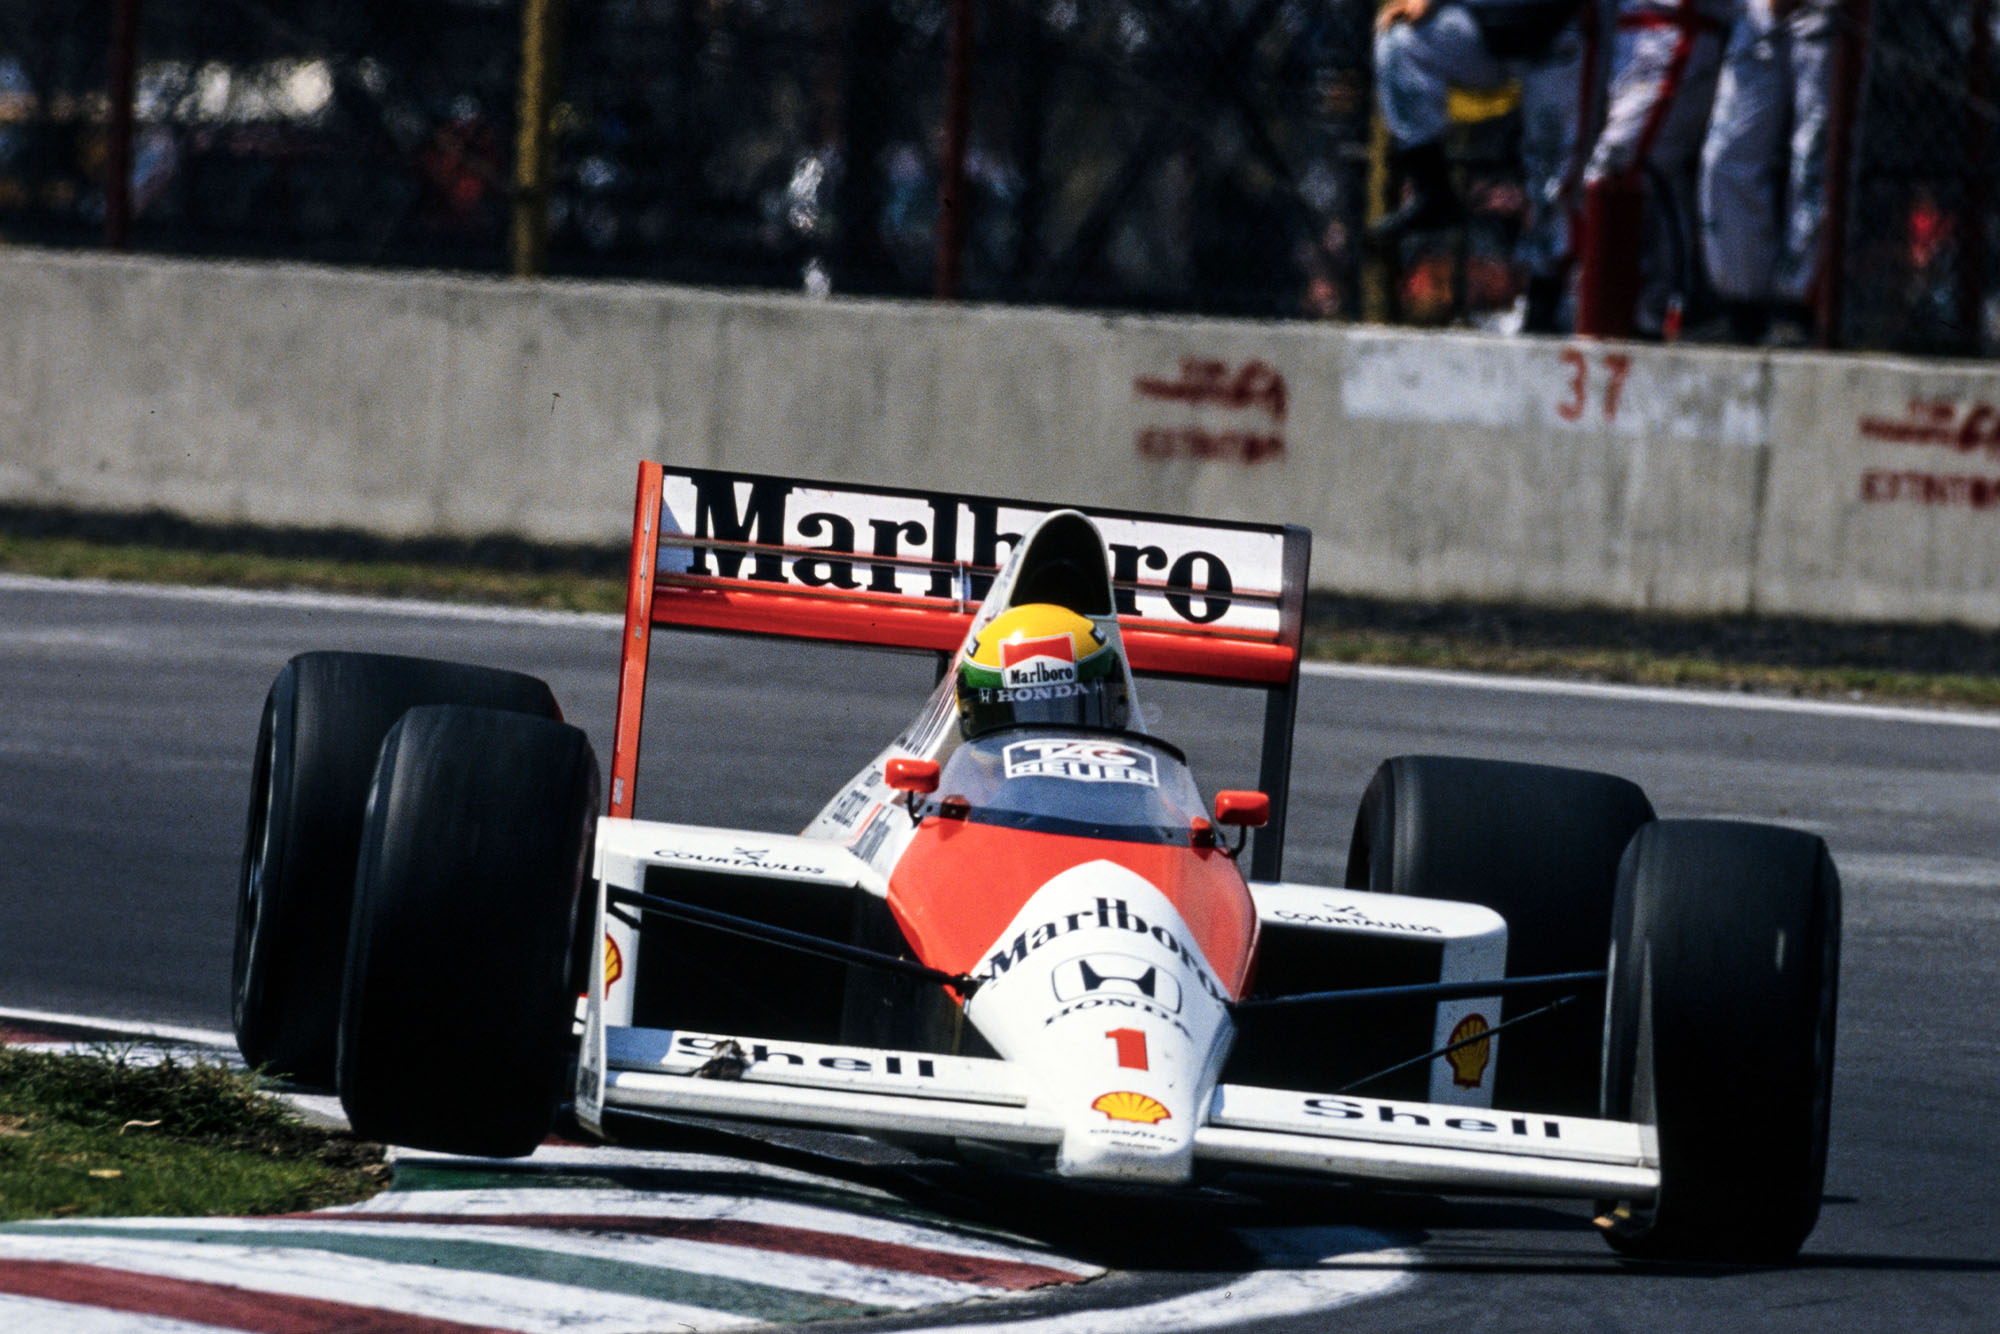 1989 Mex GP feature